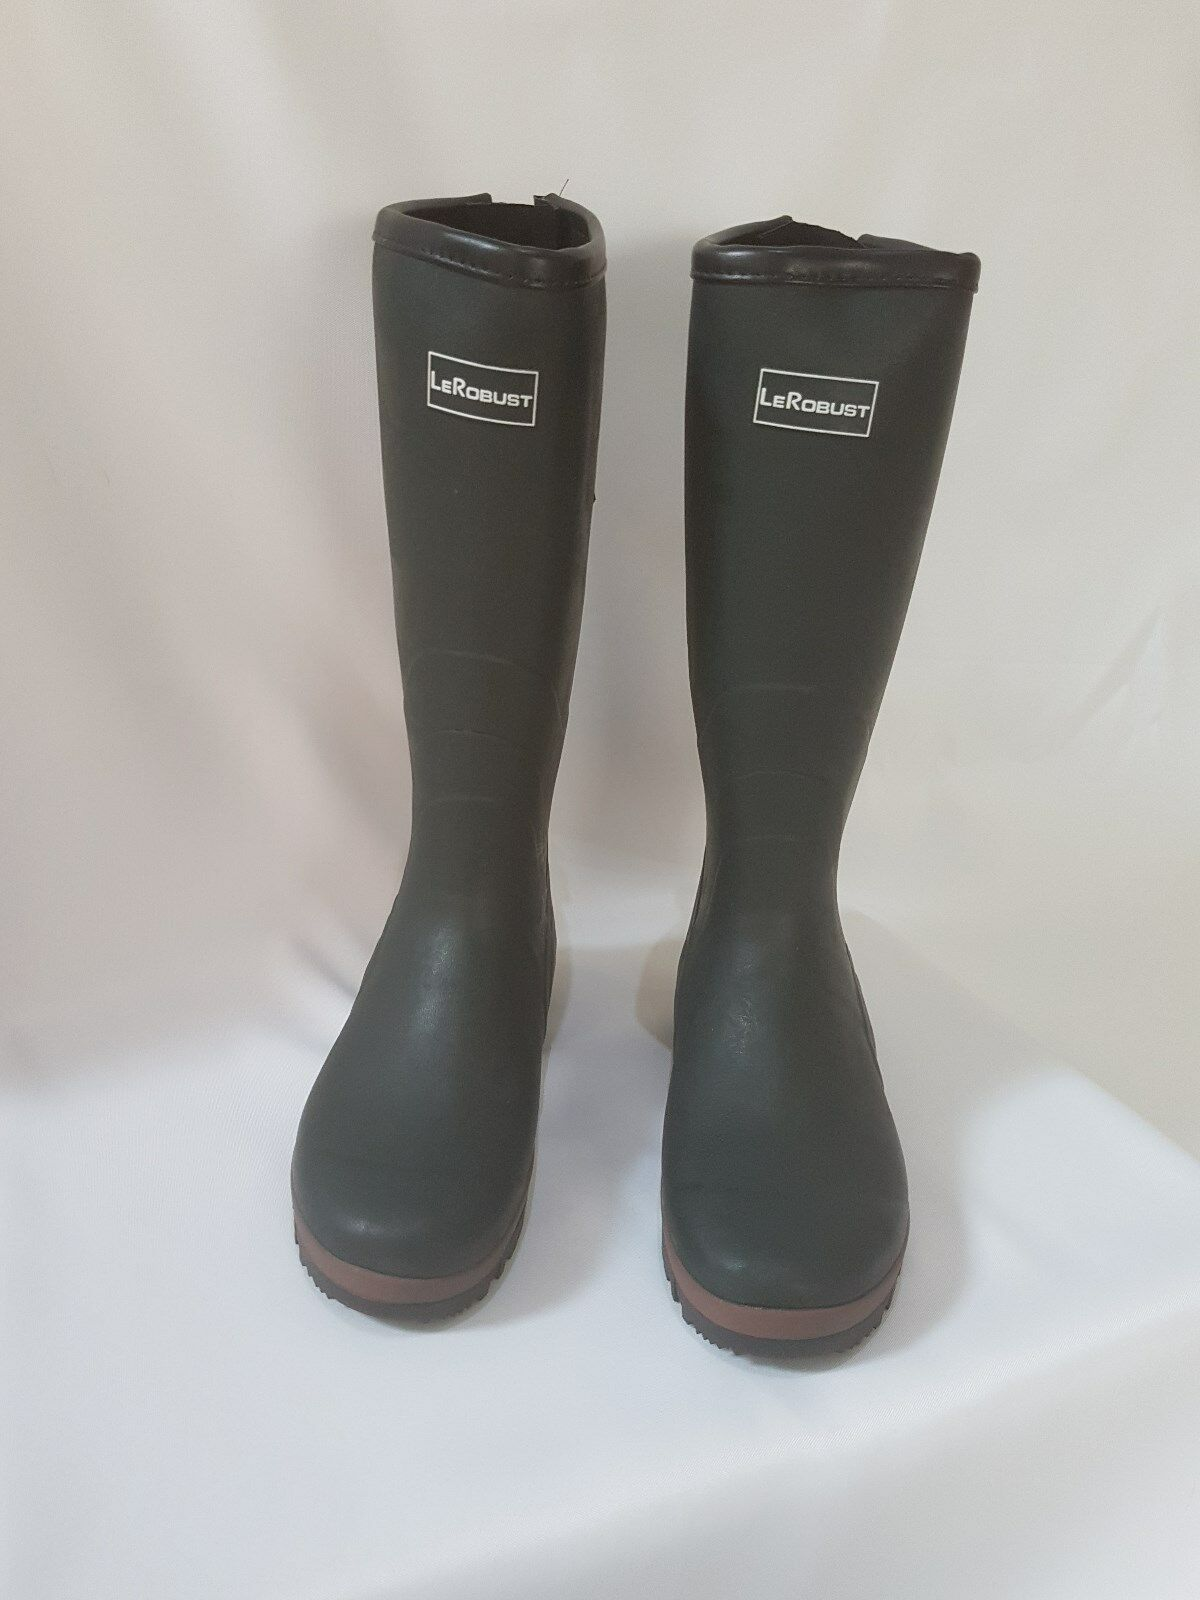 Jersey Lined adjustable green wellies SIZE 10.5 UK